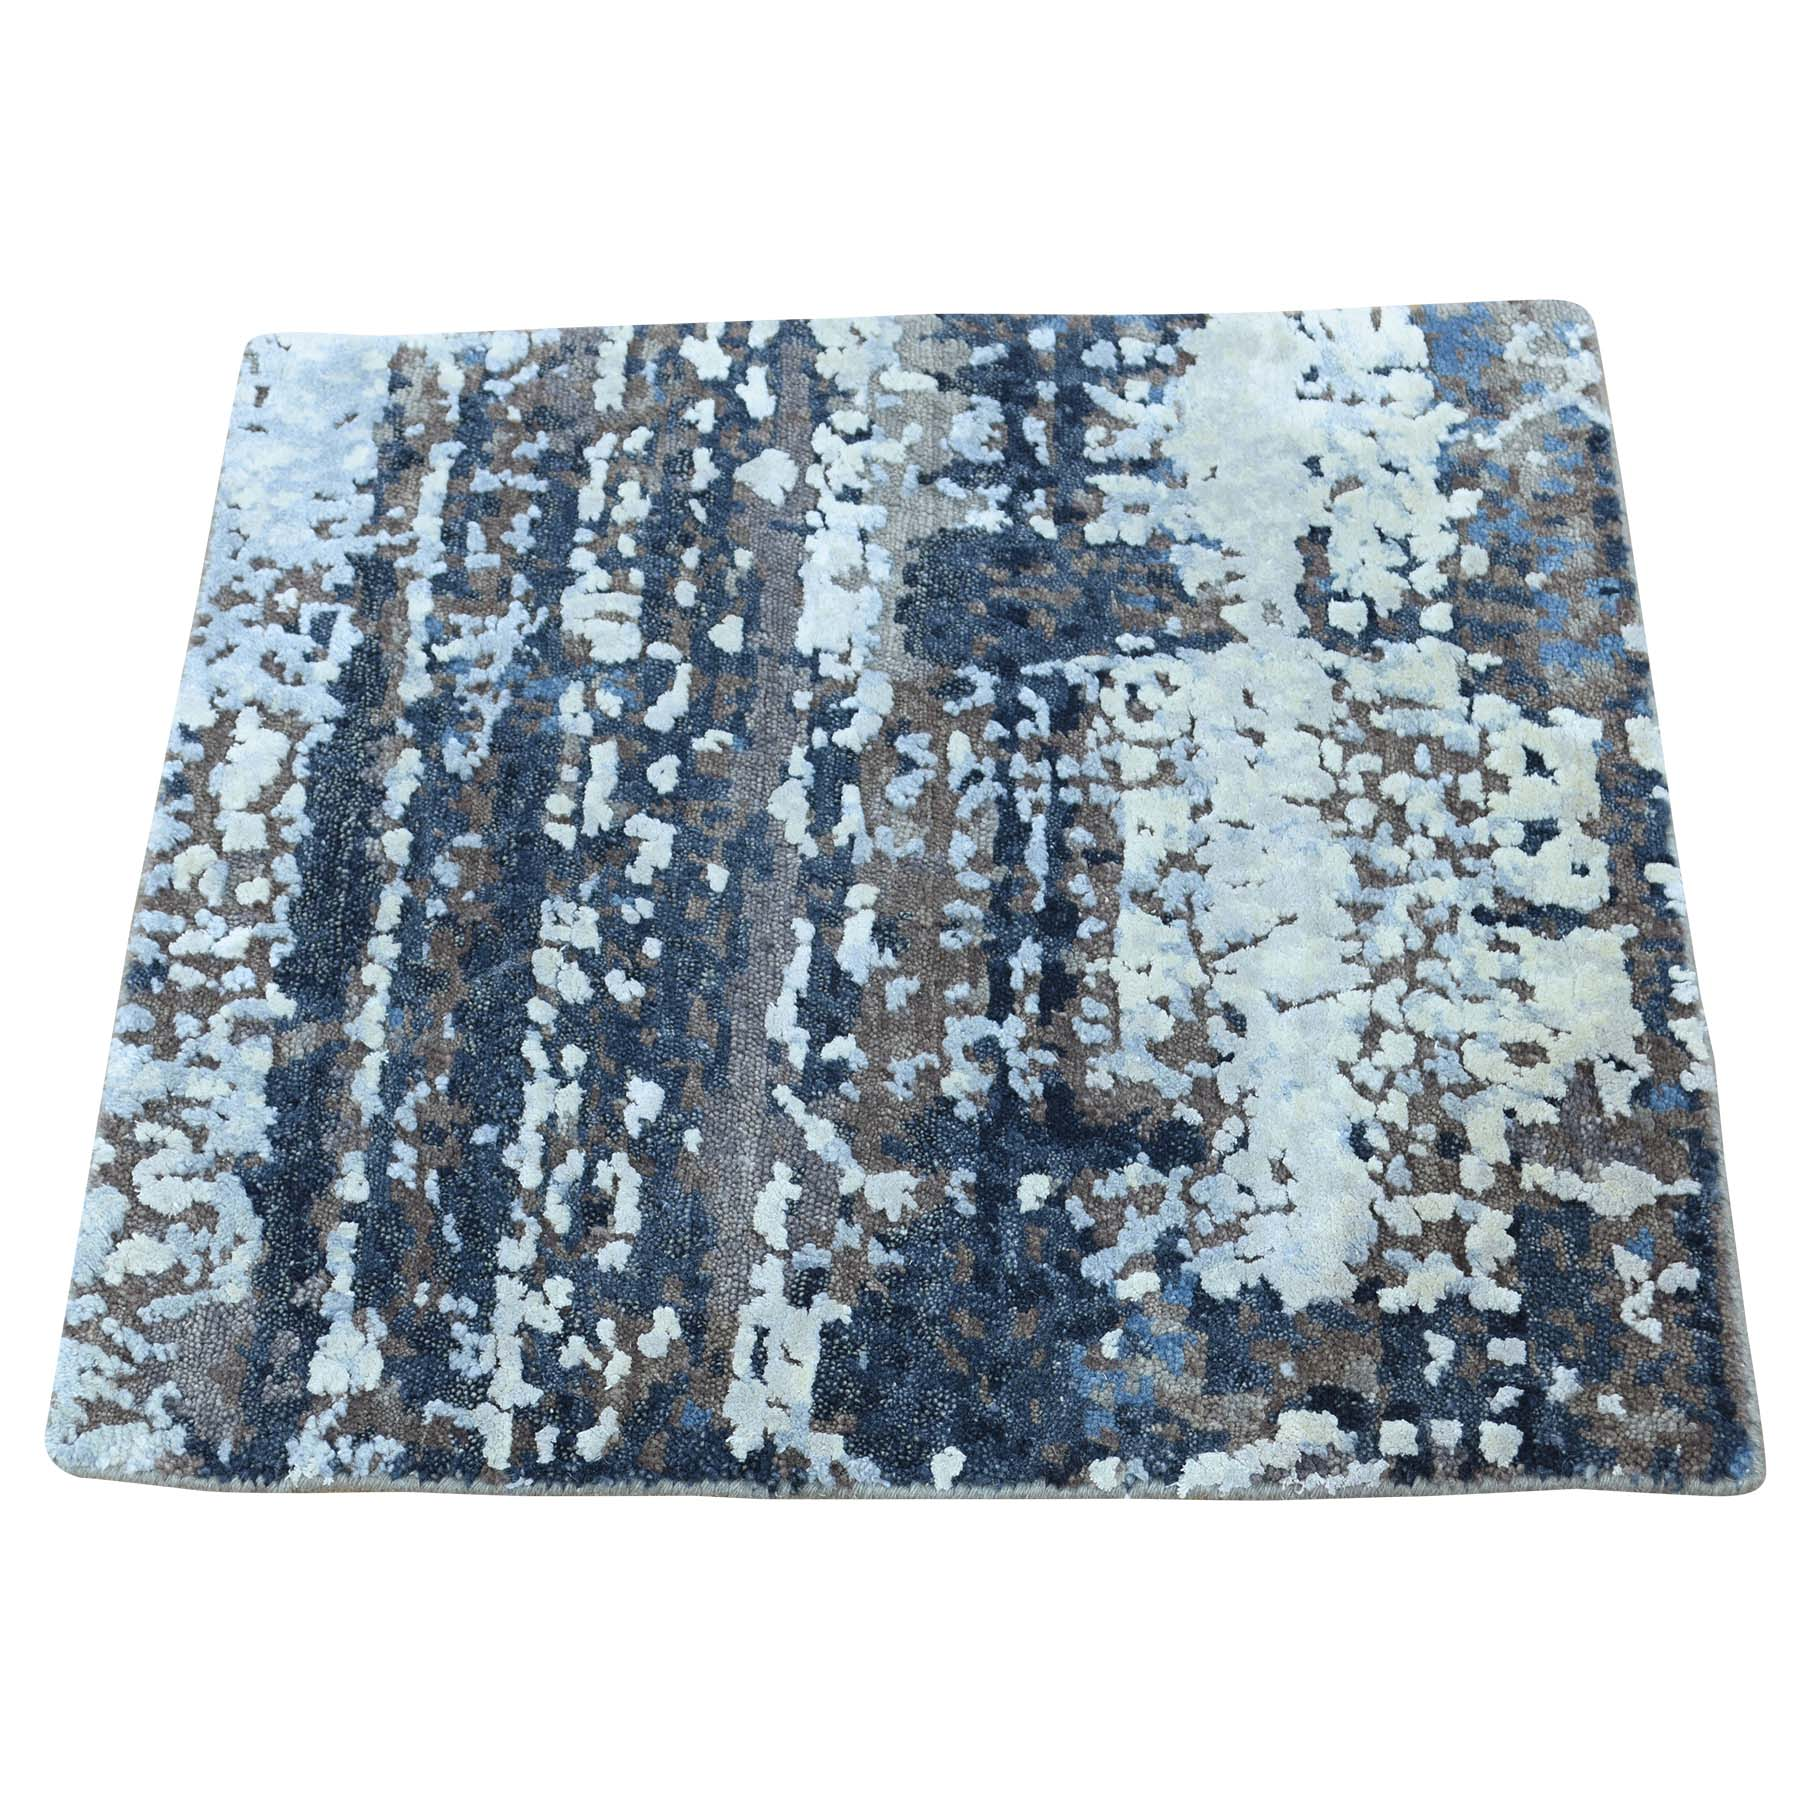 2'X2' Hand-Knotted Wool And Silk Abstract Square Hi And Low Pile Rug moac6bd7